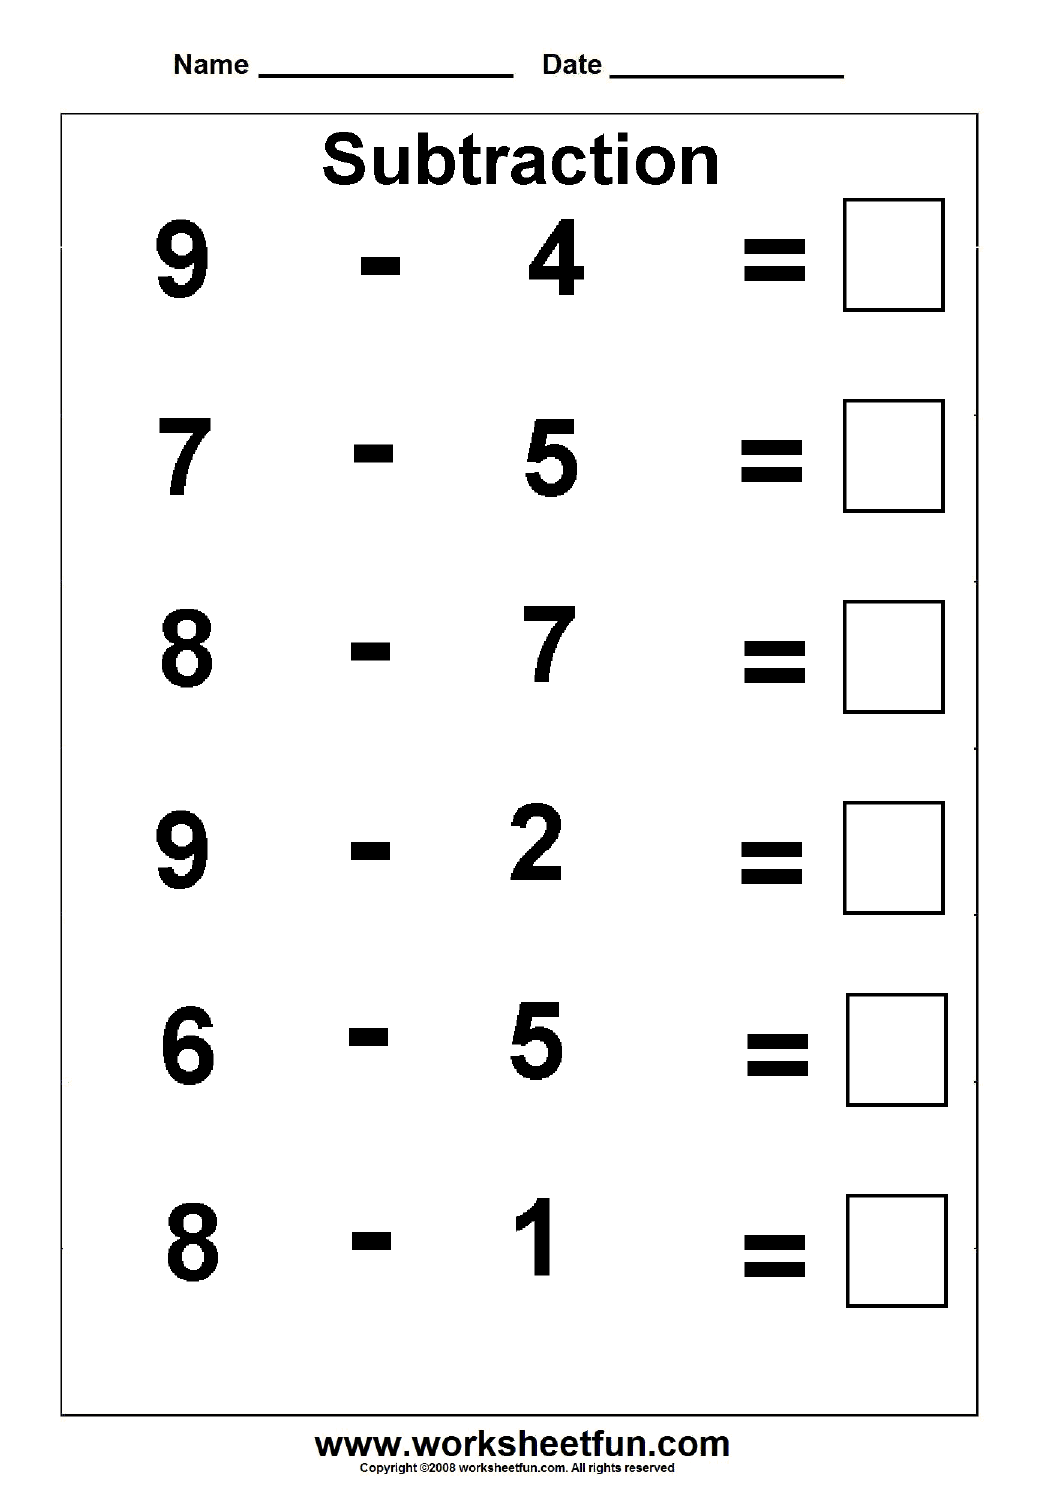 Worksheets Kindergarten Subtraction Worksheets worksheet 10001294 subtraction worksheets kindergarten free kindergarten